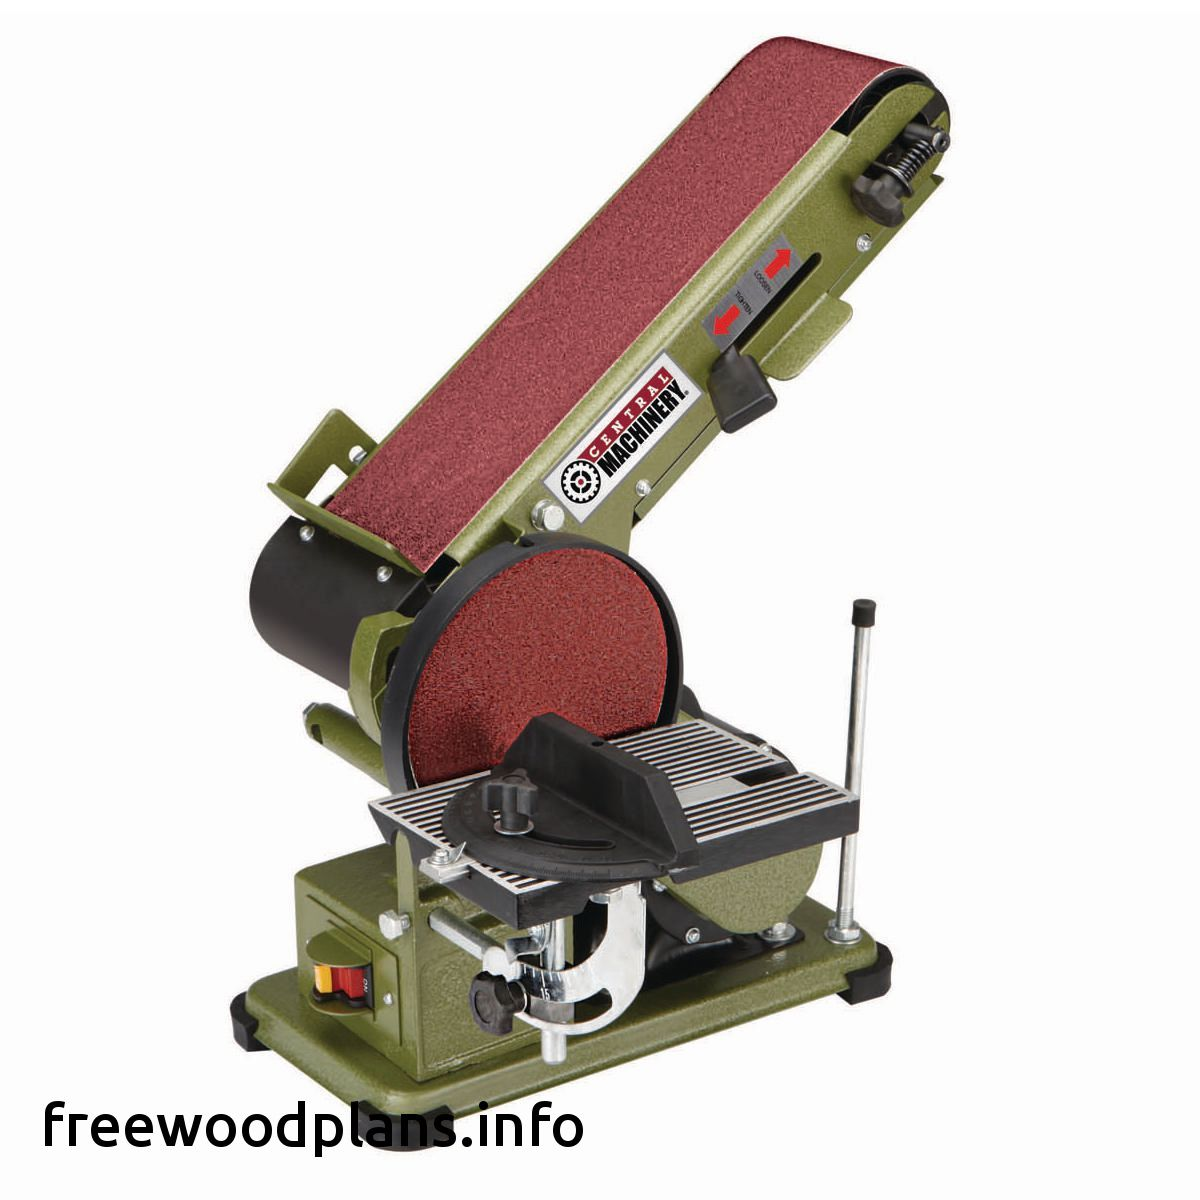 55 Sanding Stations for Woodworking 2019 Harbor freight